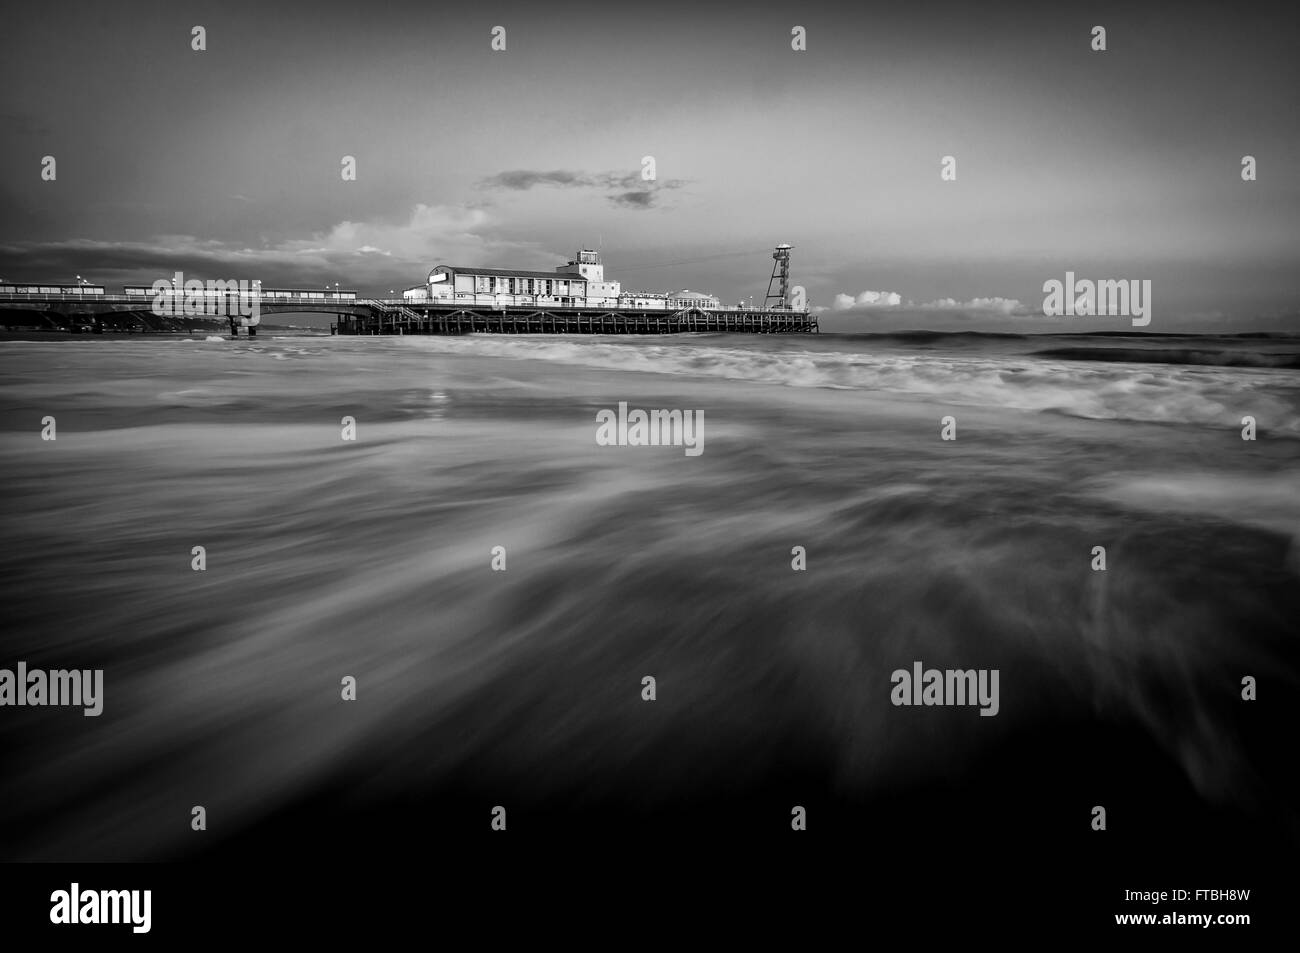 A black and white conversion of Bournemouth Pier in Dorset. - Stock Image